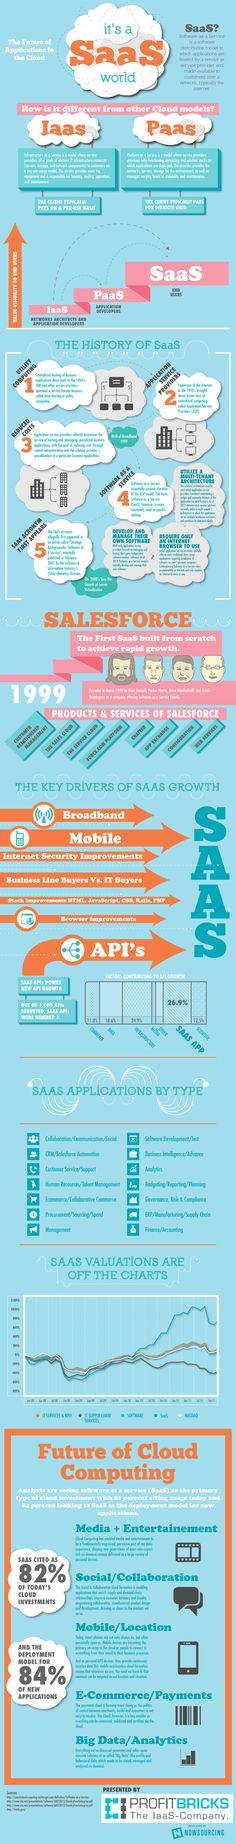 Cloud Jargon Unwound: Distinguishing Saas, IaaS and PaaS [Infographic] – ReadWrite